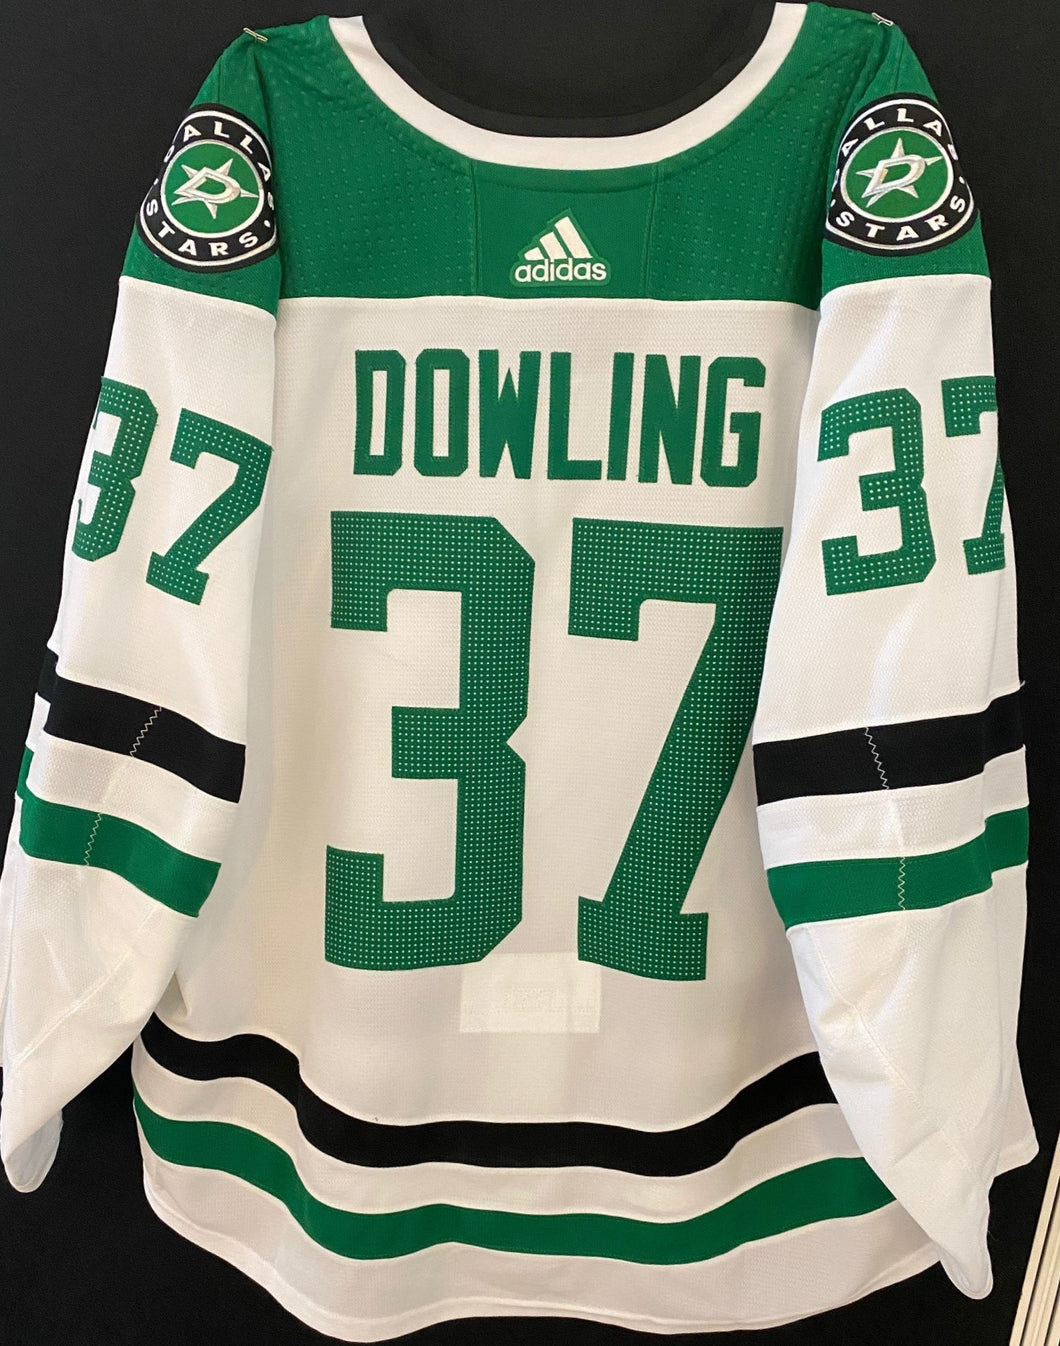 JUSTIN DOWLING 18/19 GAME WORN AWAY JERSEY - SET 3